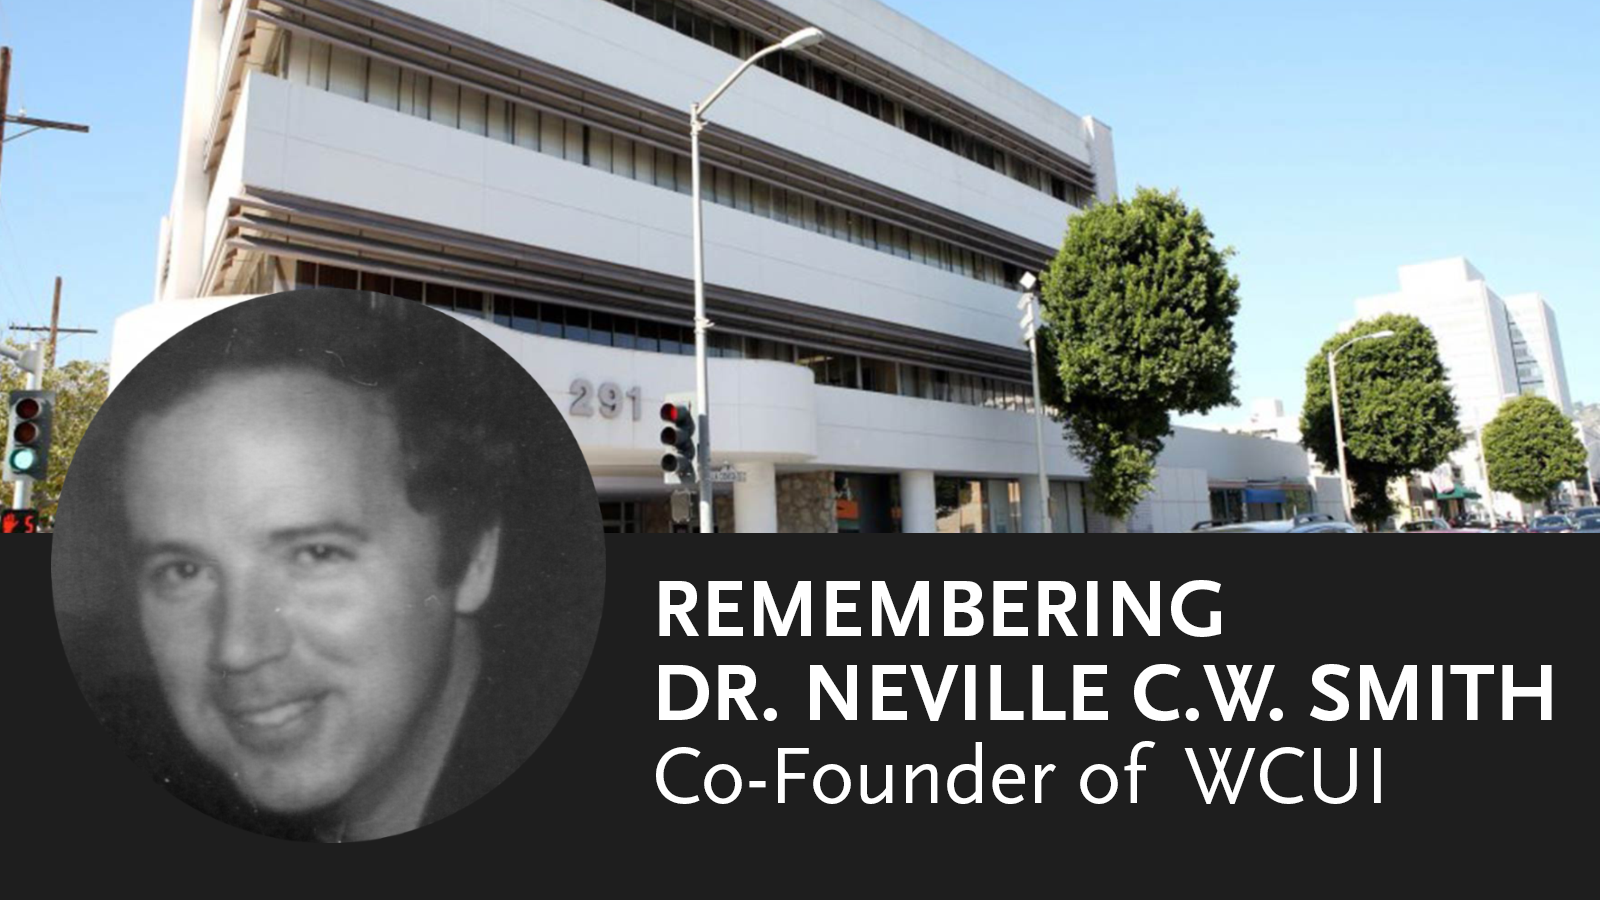 remembering dr. neville smith co-founder of WCUI